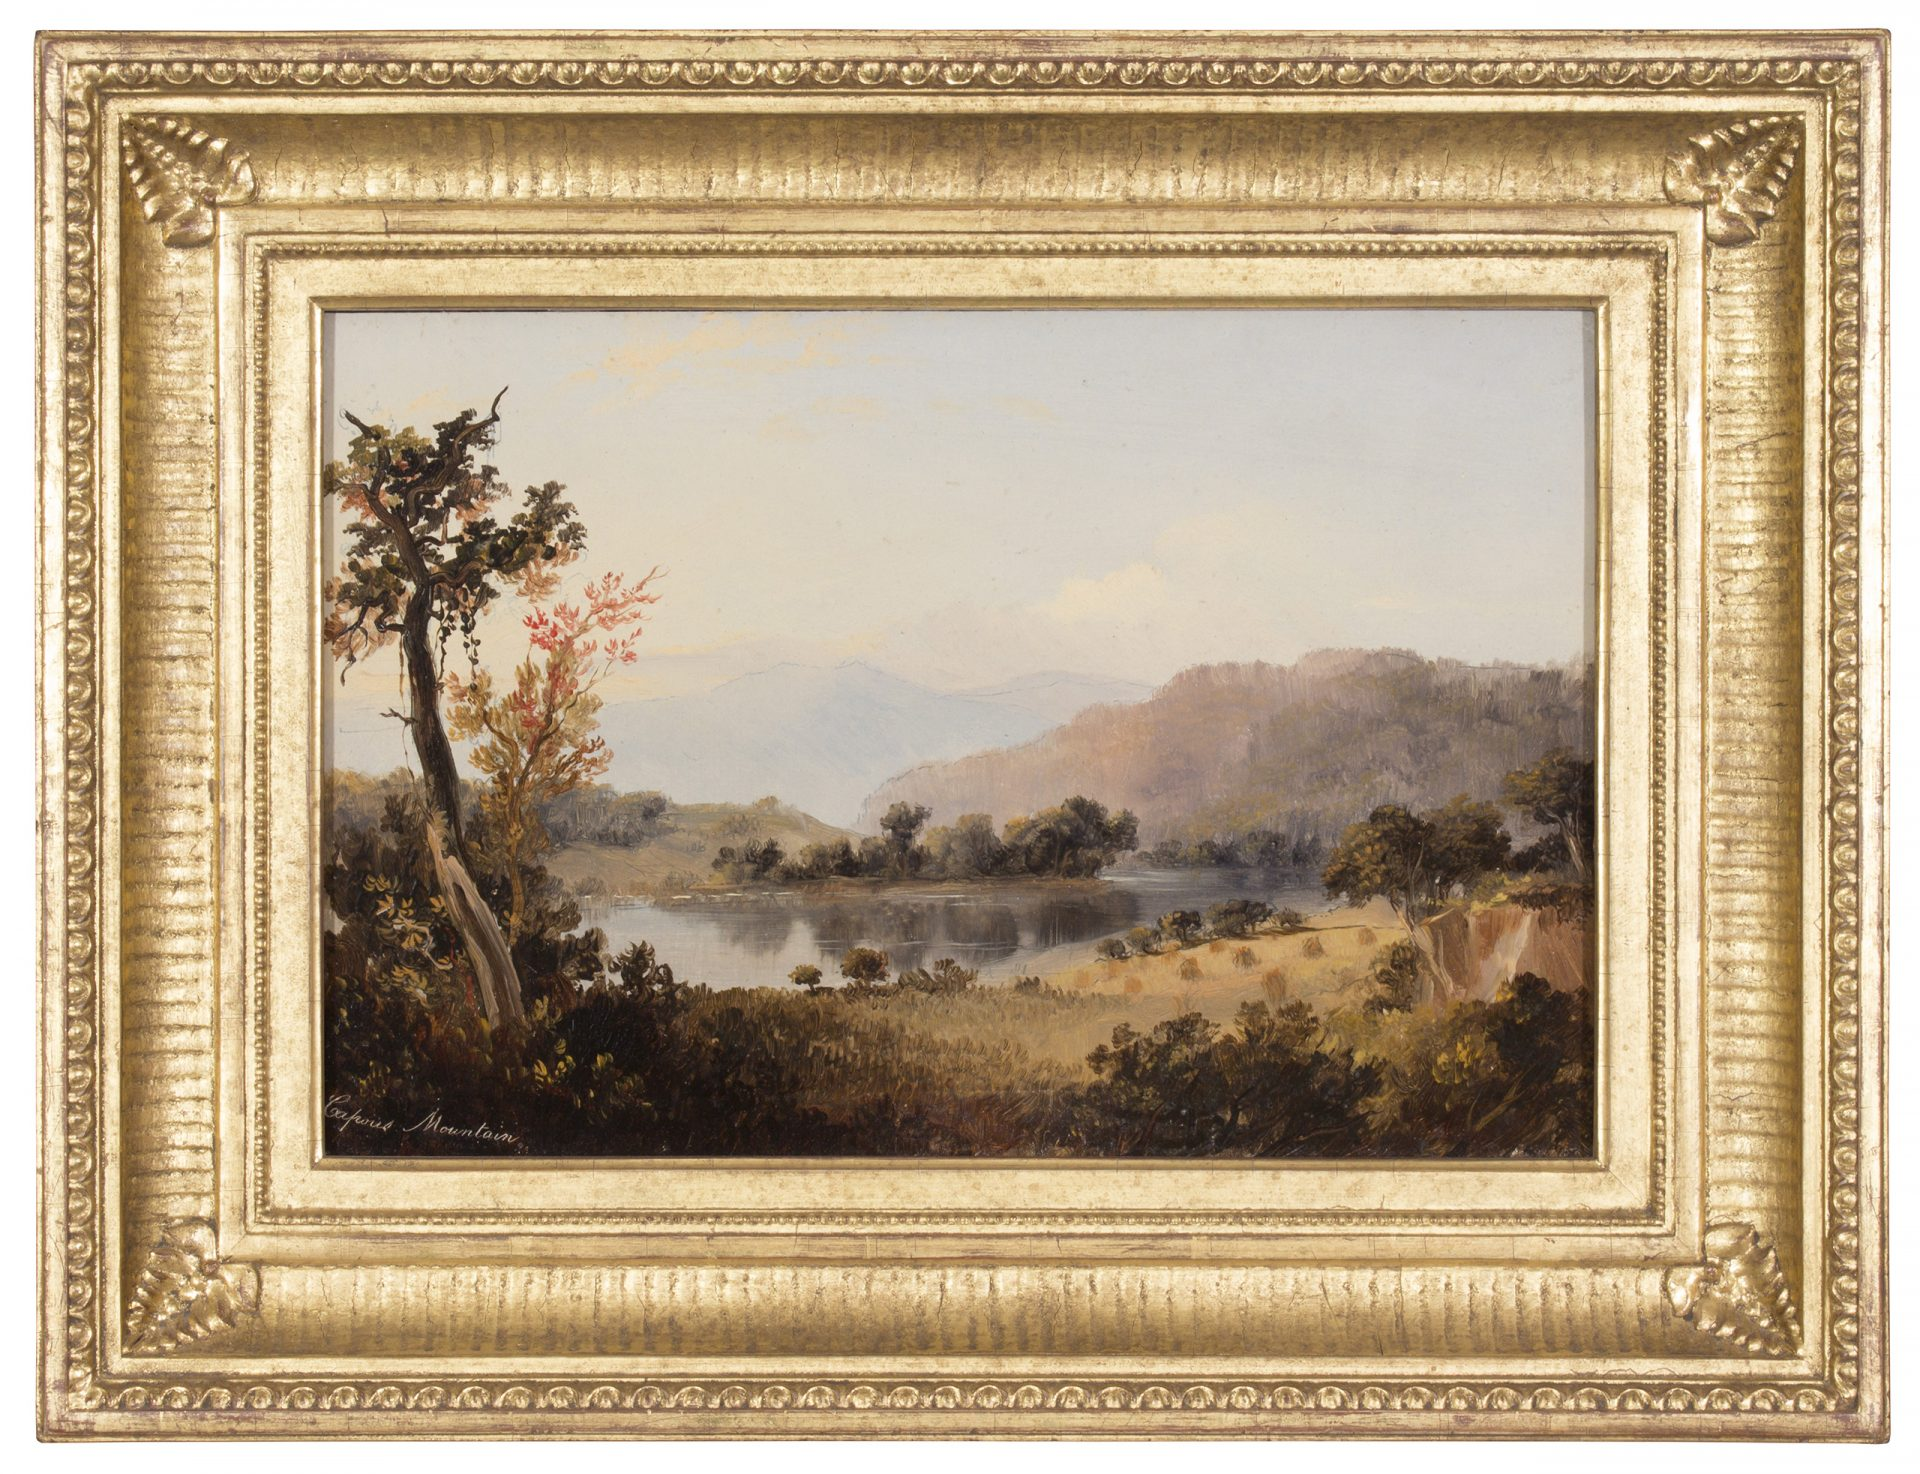 Capous Mountain, Susquehanna River FRAMED (Russell Smith)